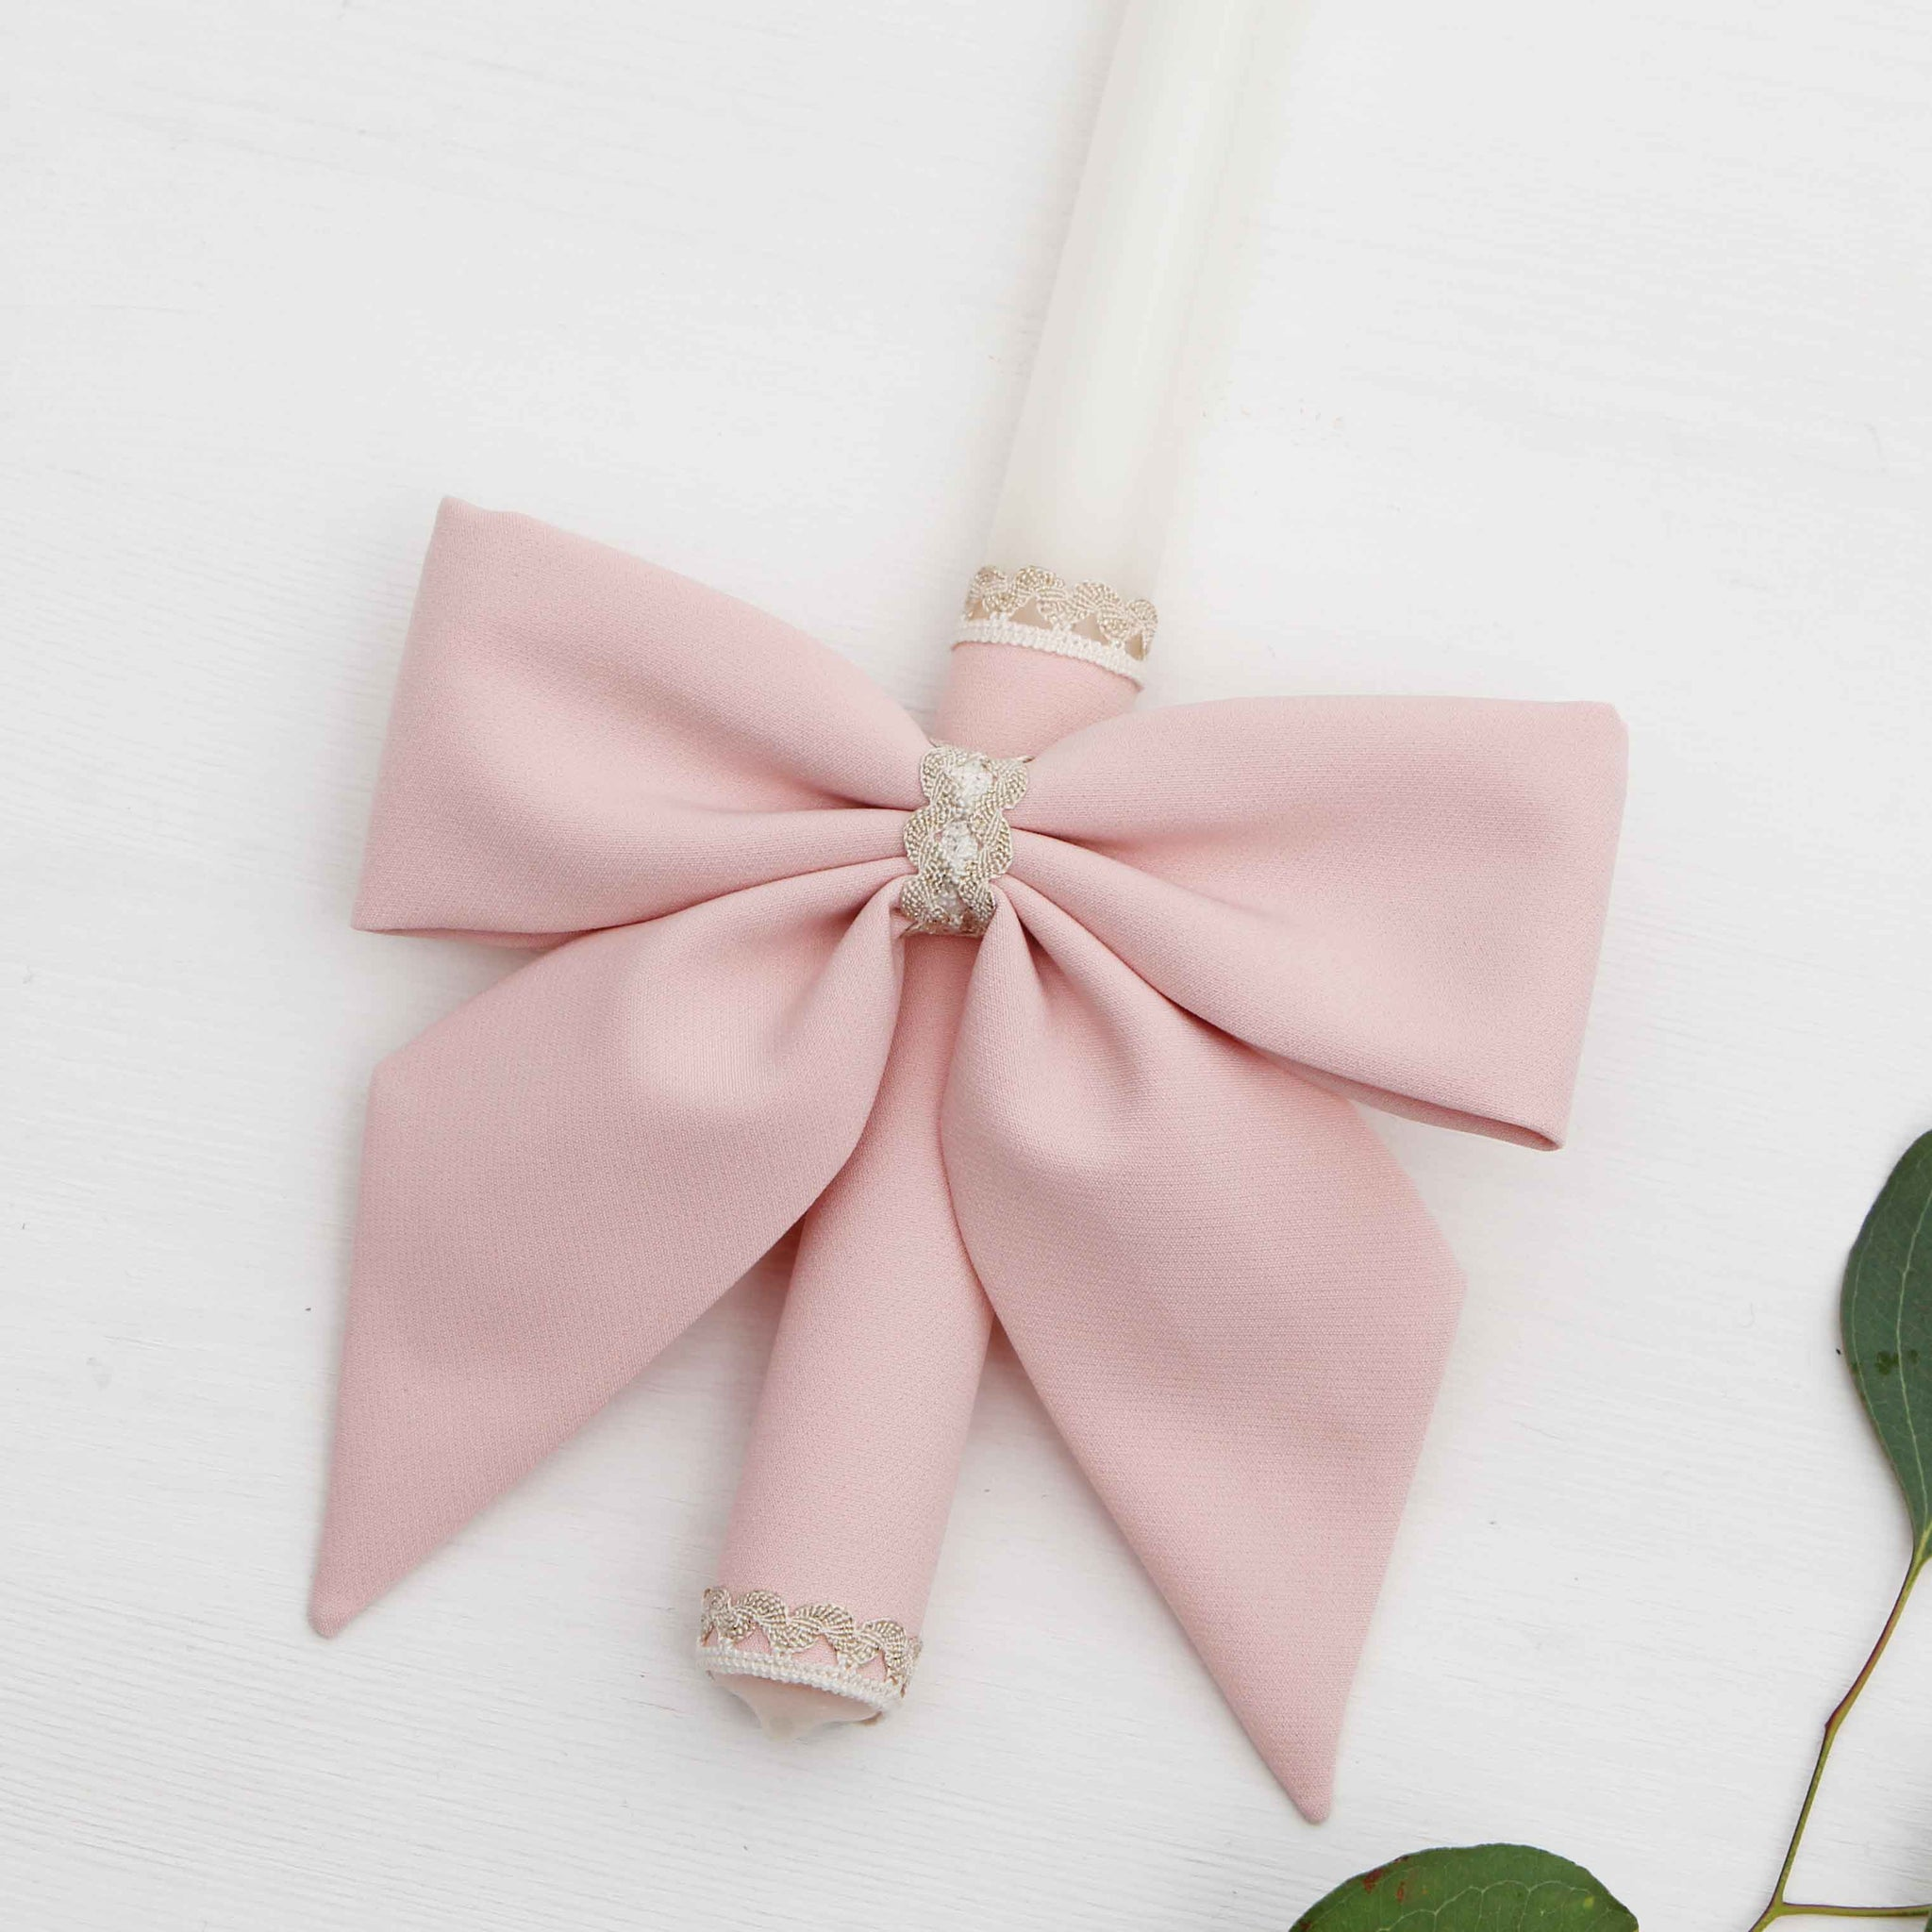 Candle Decoration Baptism Candle Deco Communion Decoration Pink Color, Christening Confirmation - Liumy